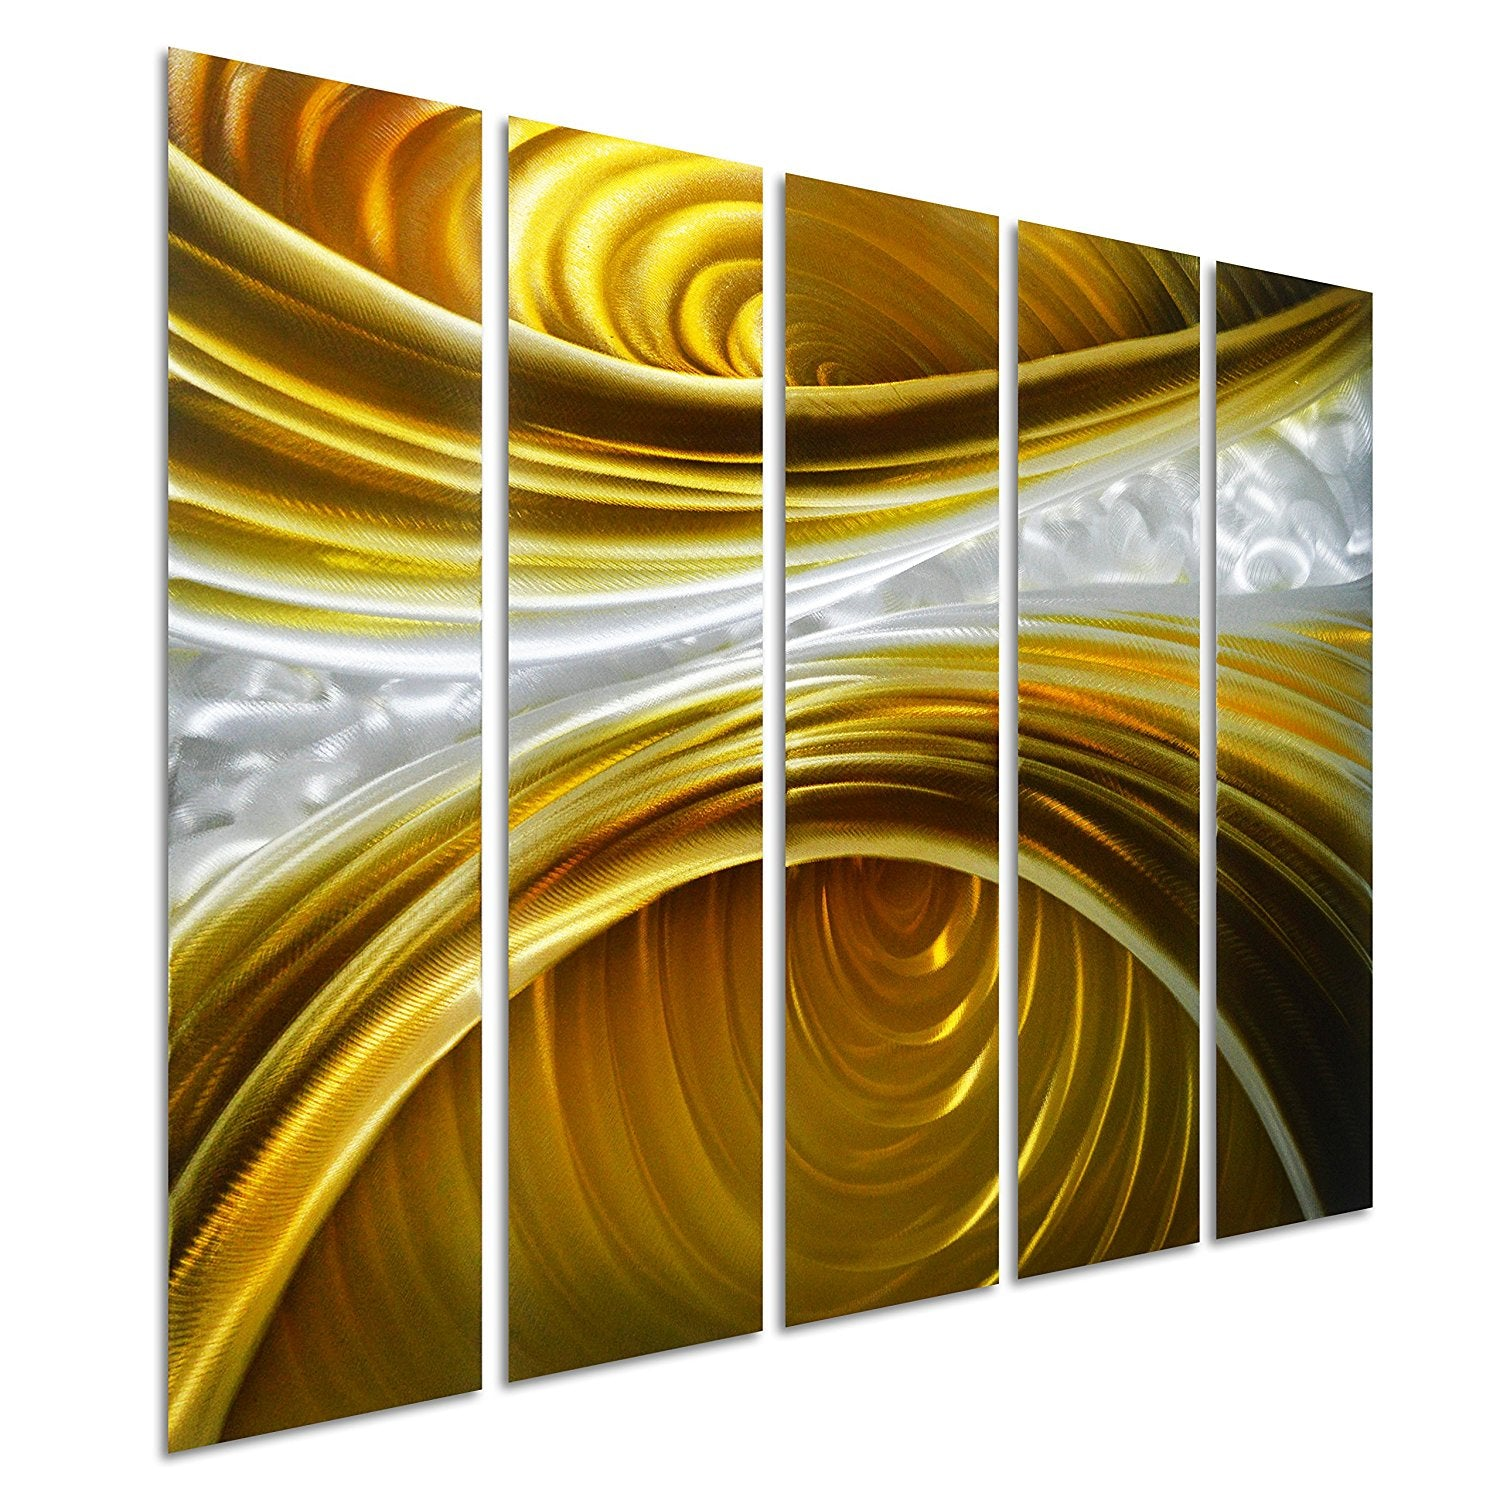 Infinite Brown - Brown Silver Gold Wall Art - Set of 5 Small Panels ...